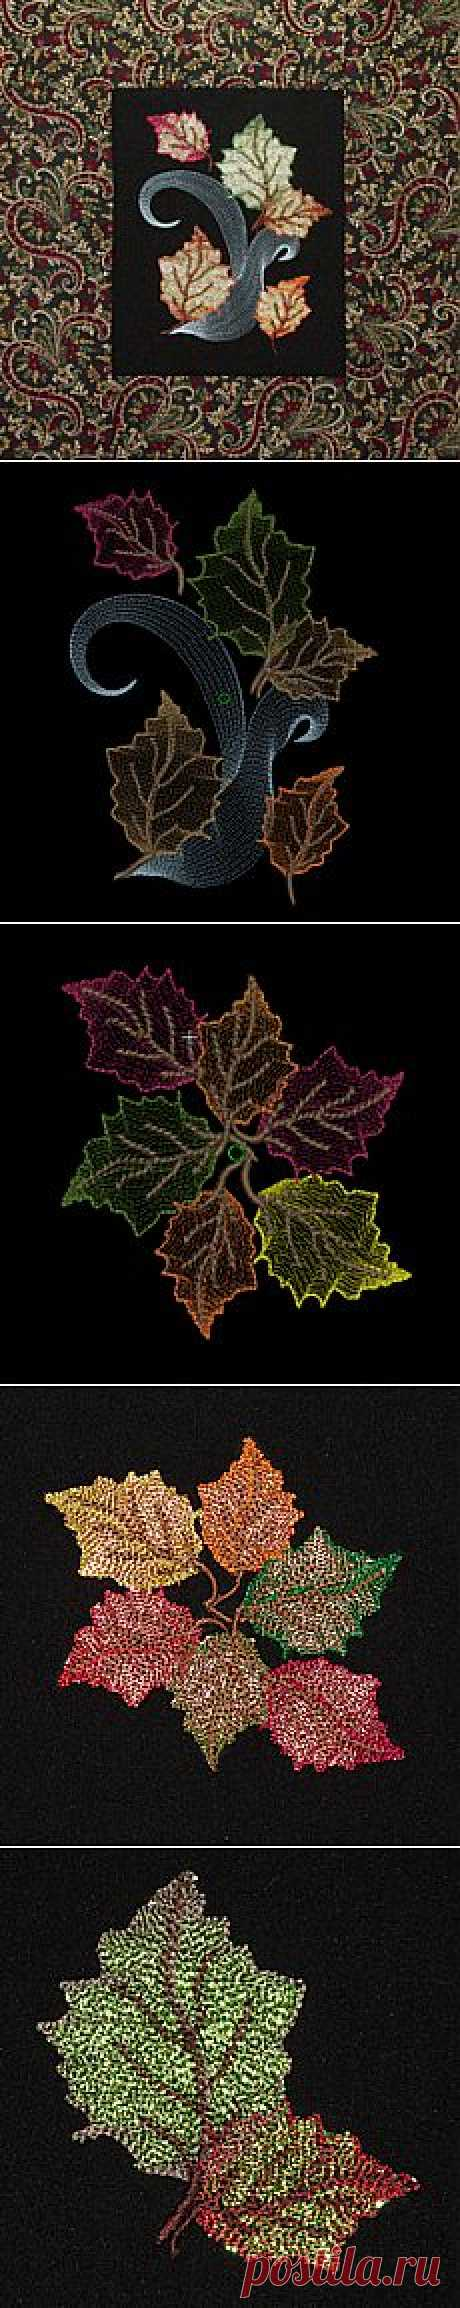 fall leaf leaves embroidery mylar angelina film contour design exclusive